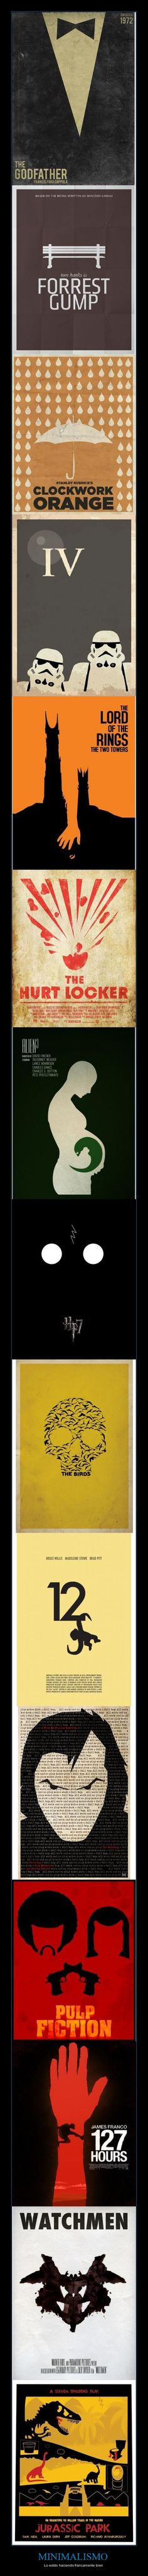 some cool posters Minimalist Graphic Design, Graphic Design Books, Minimalist Drawing, Minimalist Poster, Graphic Design Illustration, Marvel Movie Posters, Disney Movie Posters, Minimal Movie Posters, Cool Posters